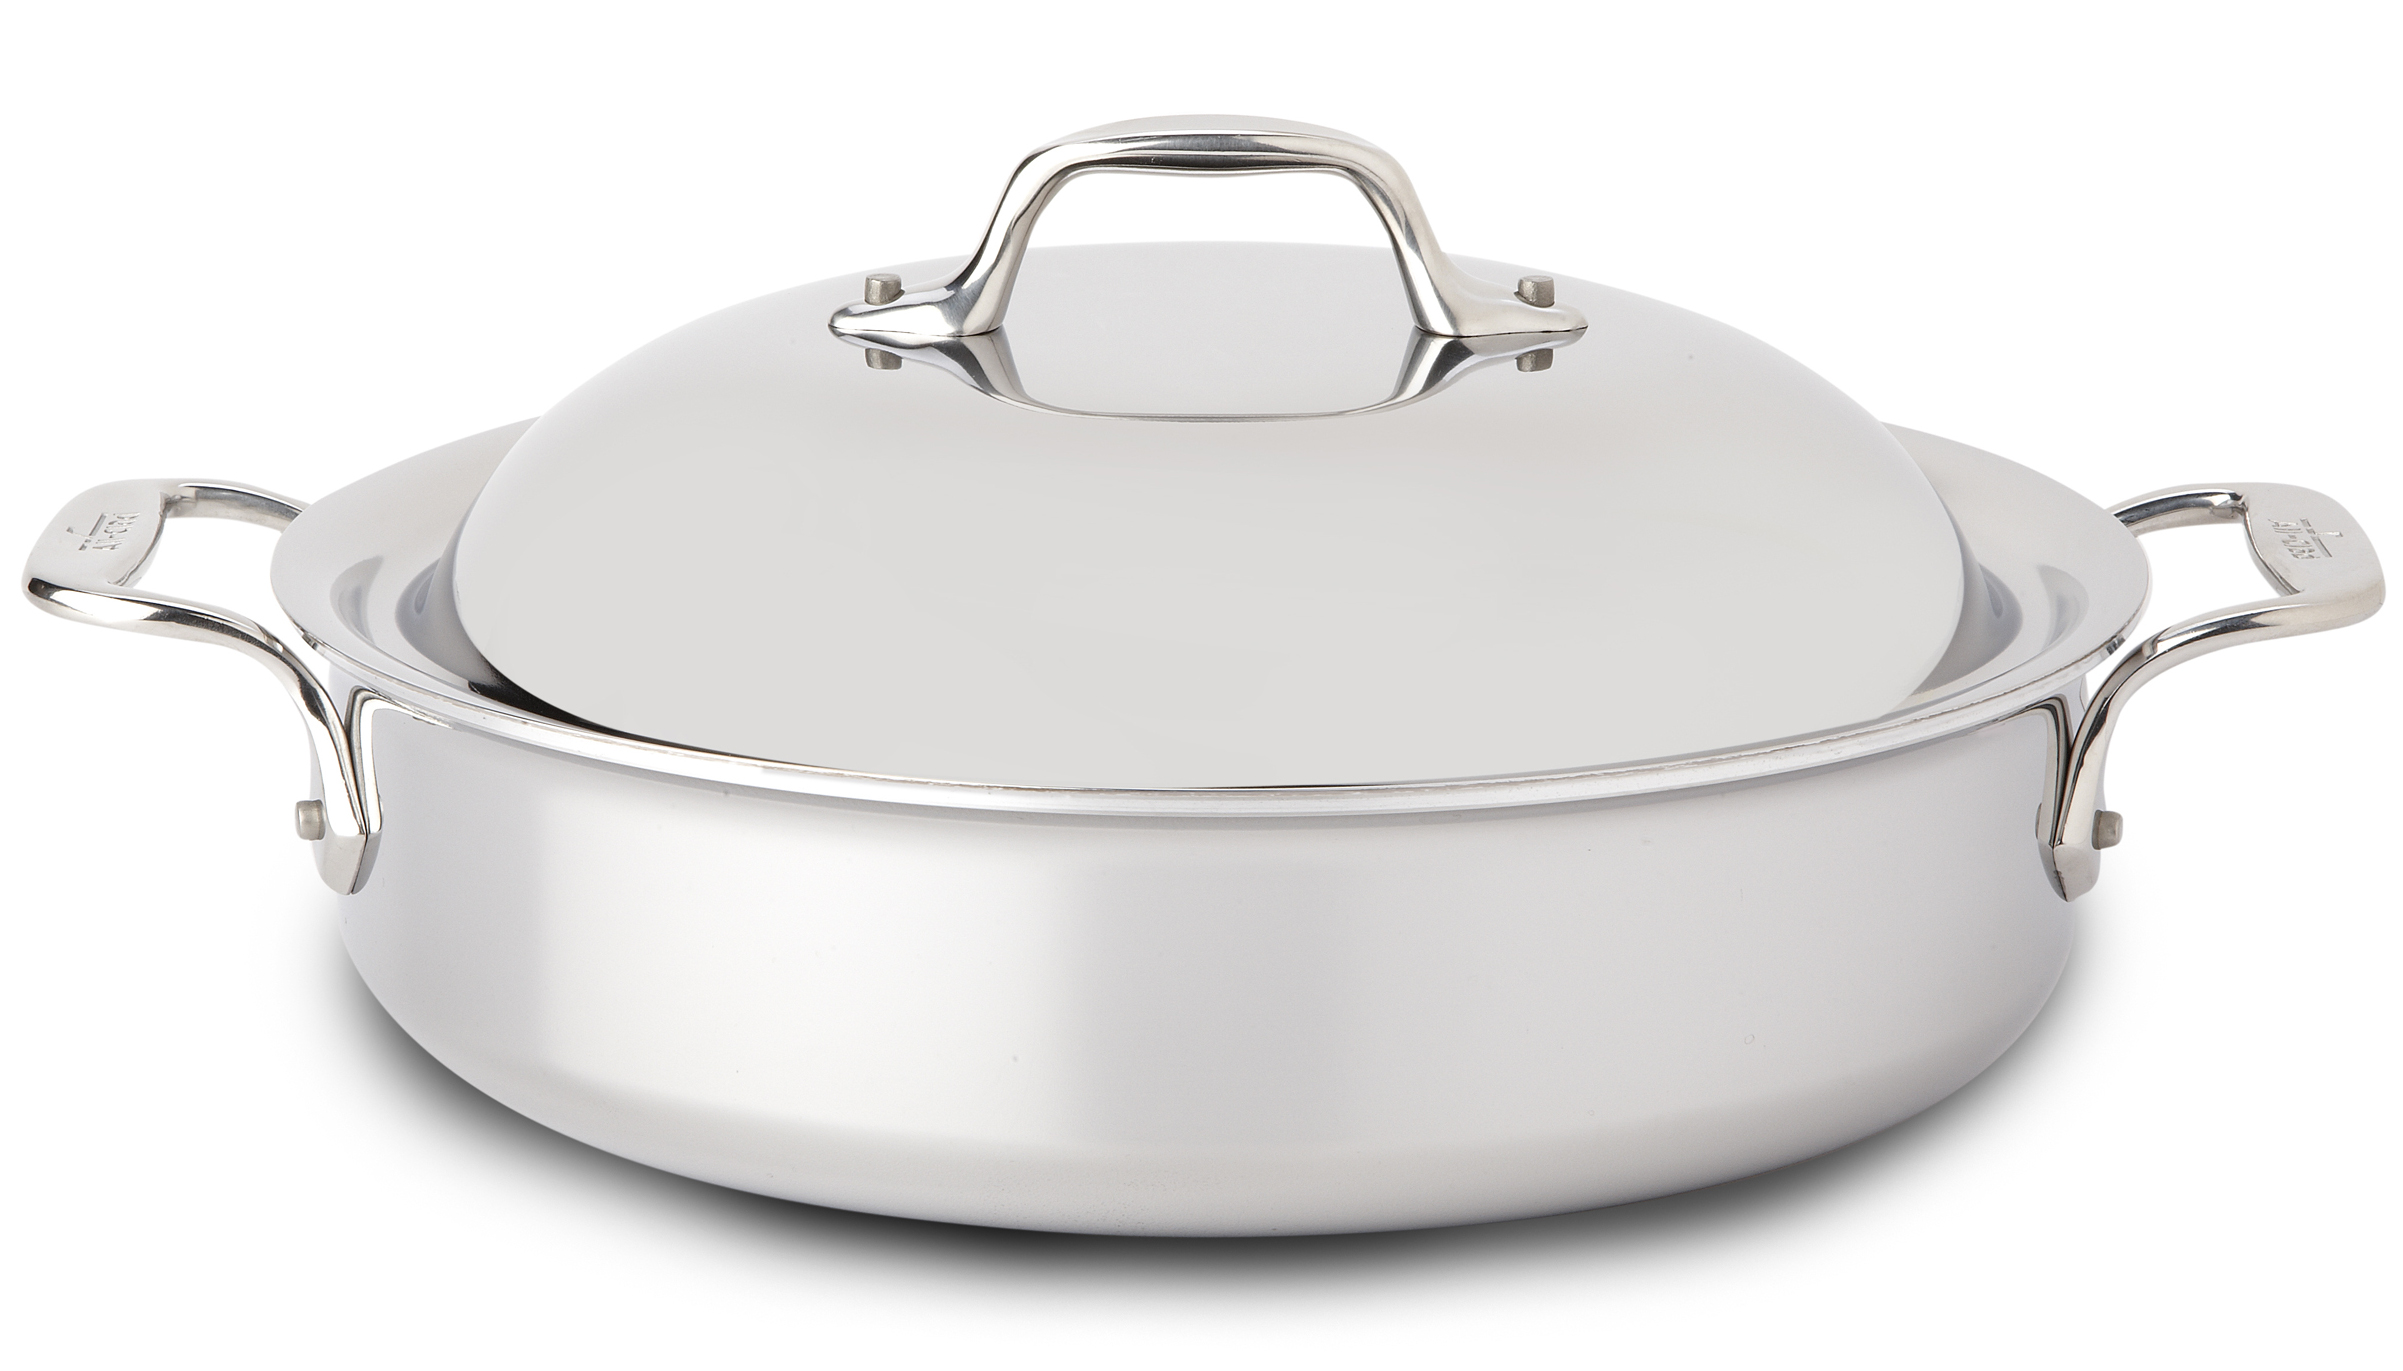 All-Clad Tri-Ply Stainless Steel Sauteuse Pan with Domed Lid, 4 Quart